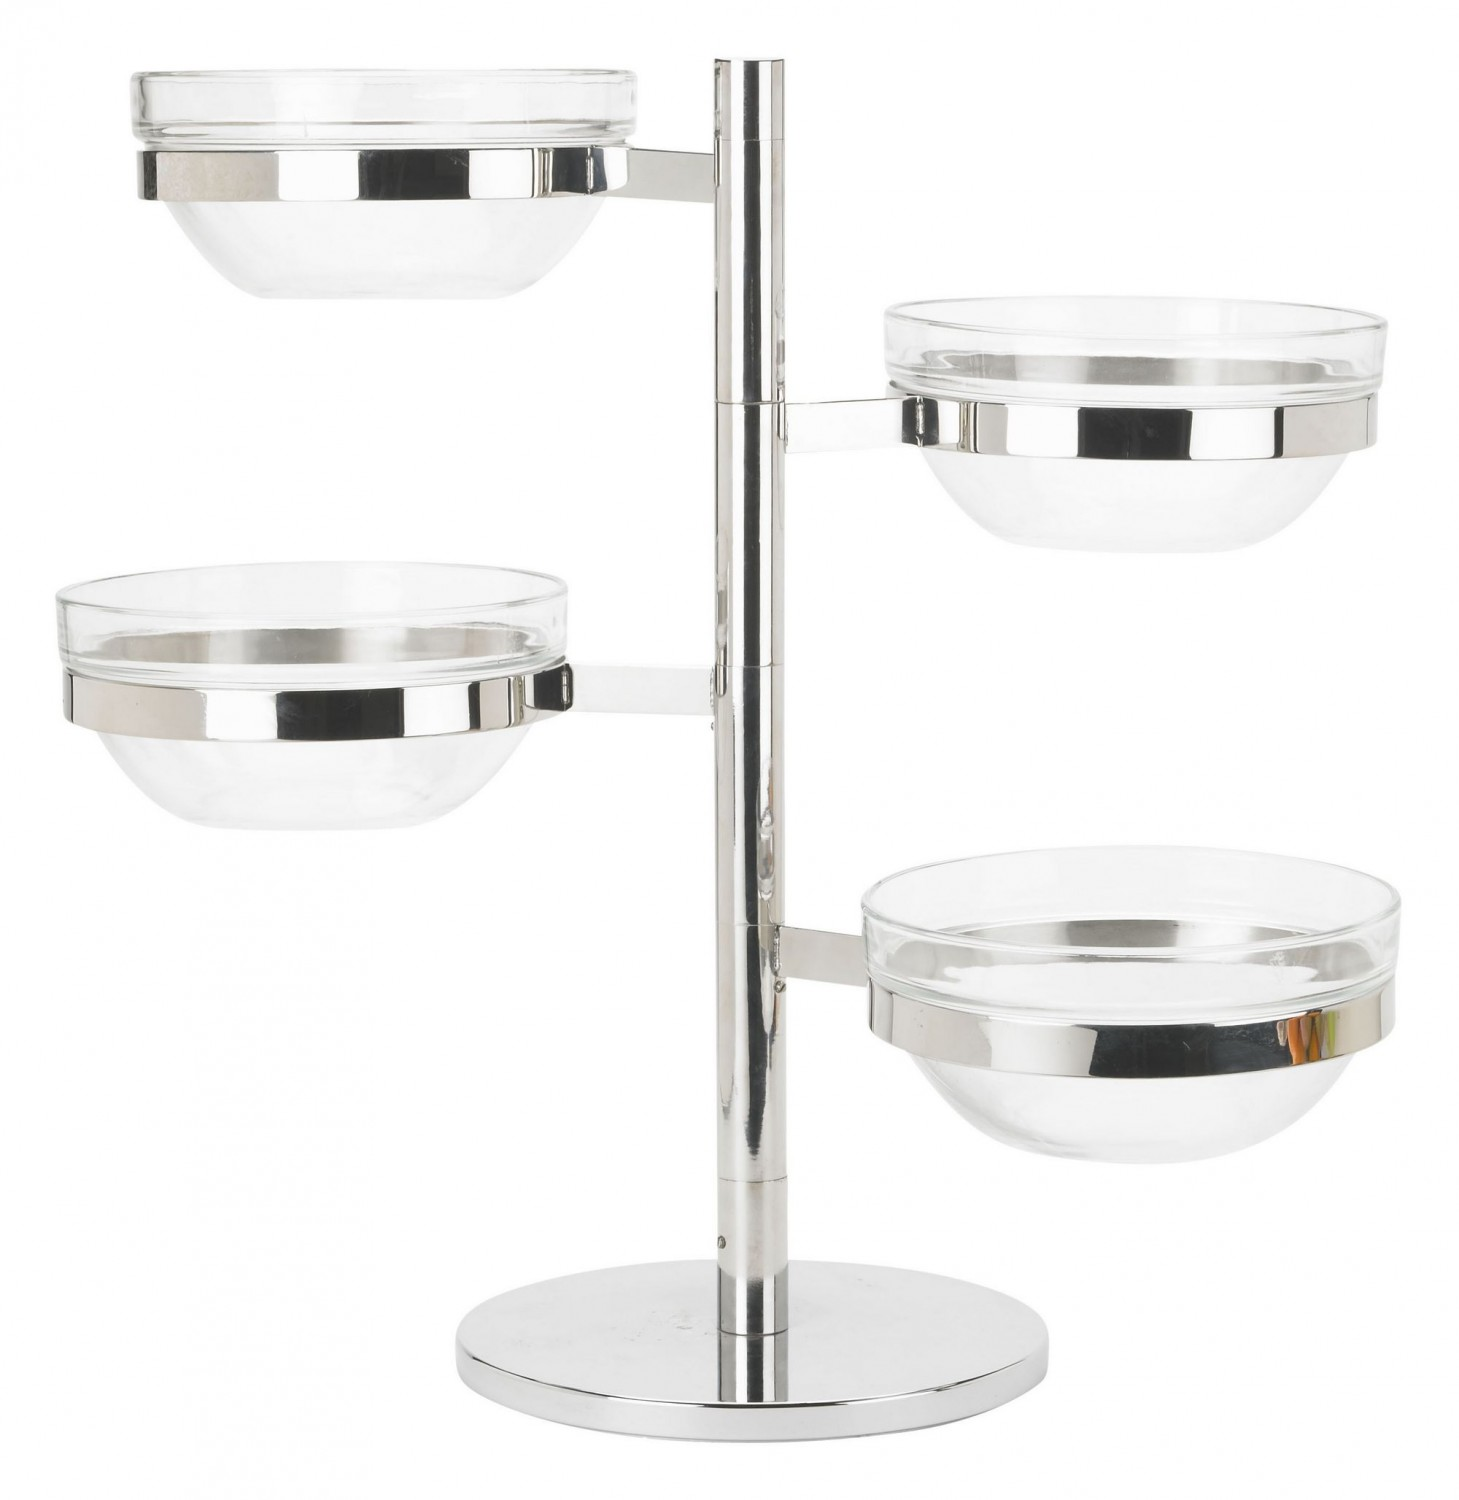 Winco TDSF-4 4-Tier Swing Arm Glass Bowl Display Set